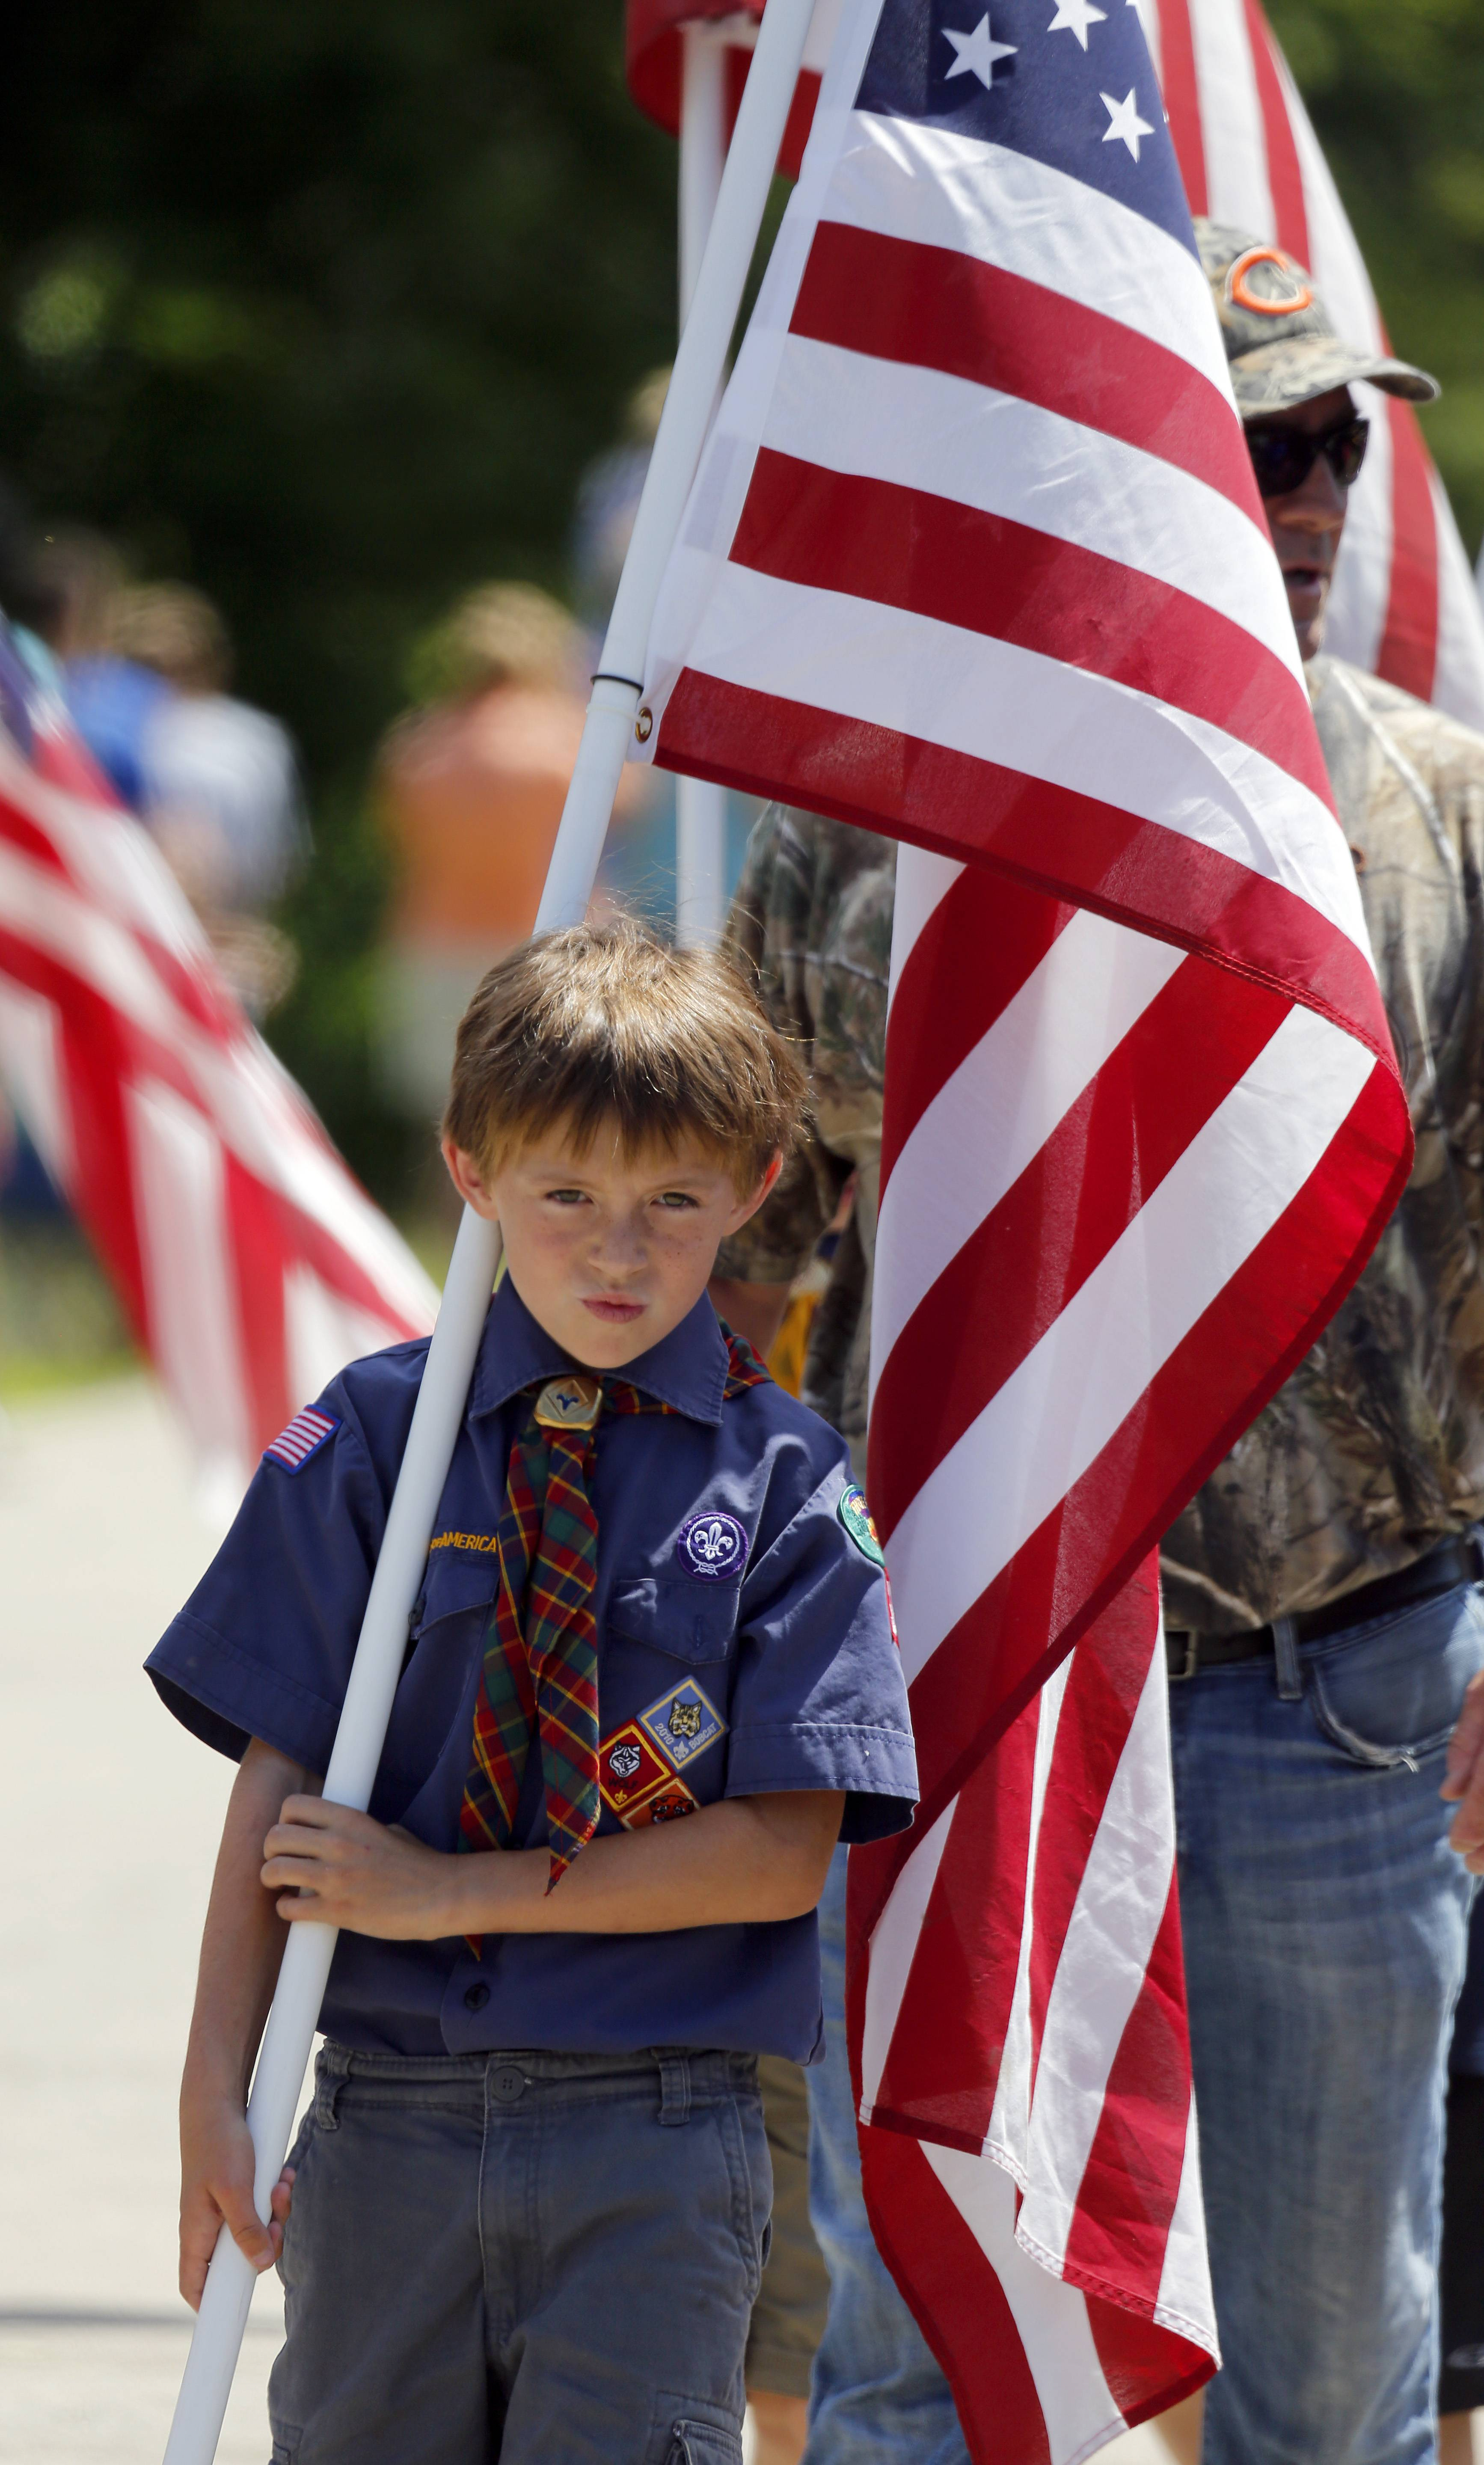 Bryce Pfeifer, 10, of Lake in the Hills and Webelos den 36 carries the flag during the Bill Ritchie Memorial Parade Fourth of July Parade Friday in Sleepy Hollow.